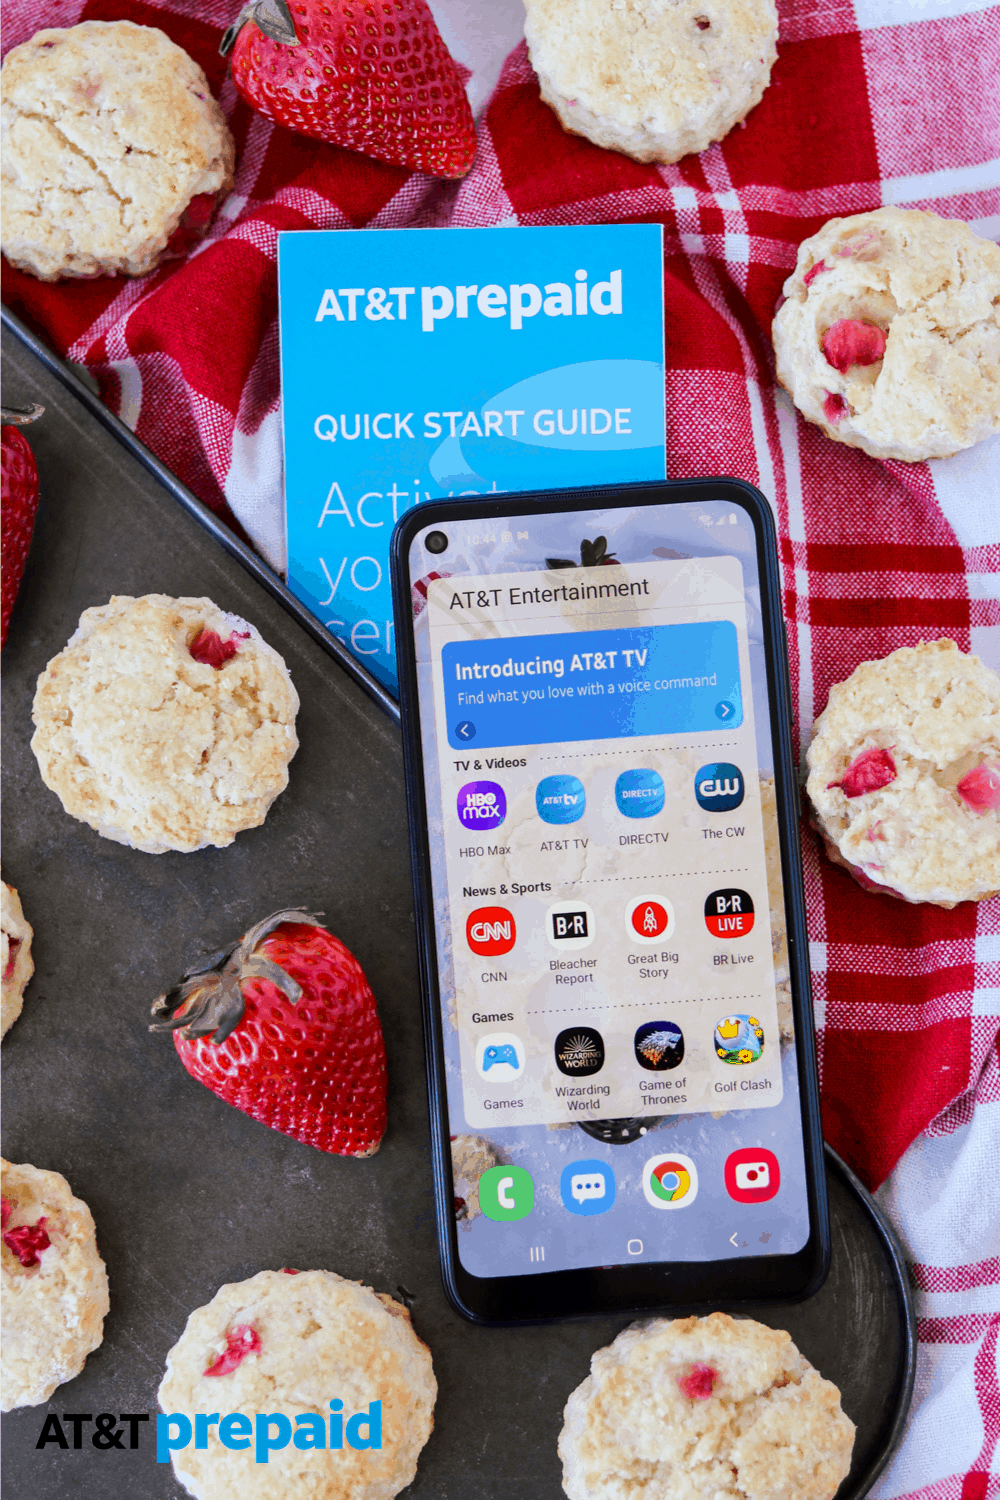 AT&T PREPAID now has a 12-month plan for one payment of $300.